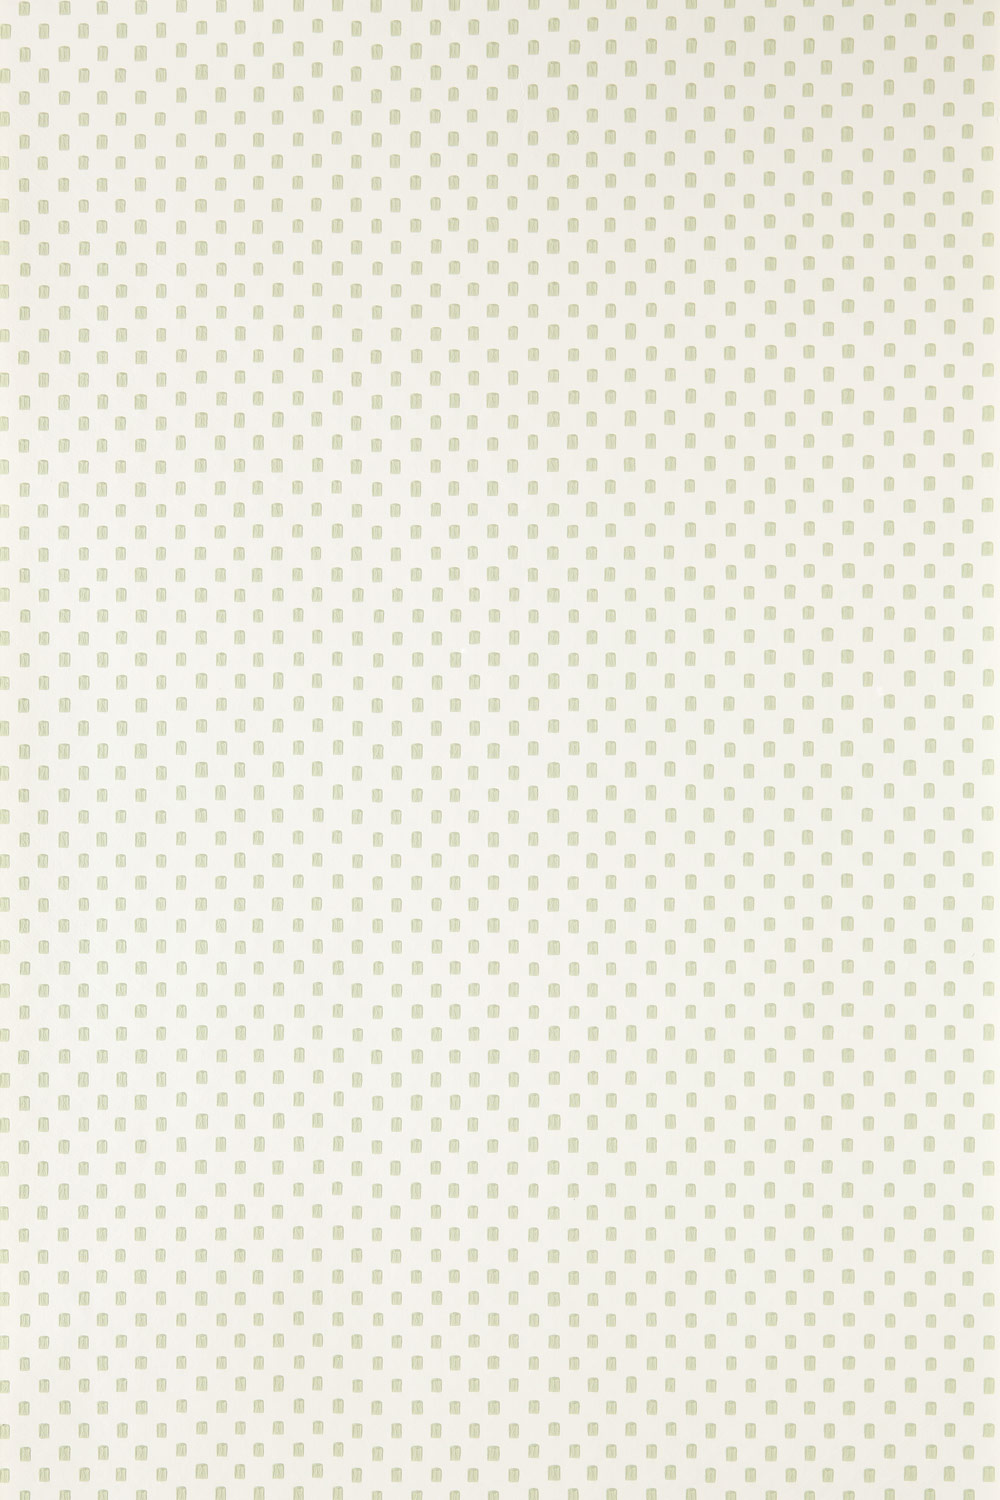 Farrow & Ball Polka Square BP 1065